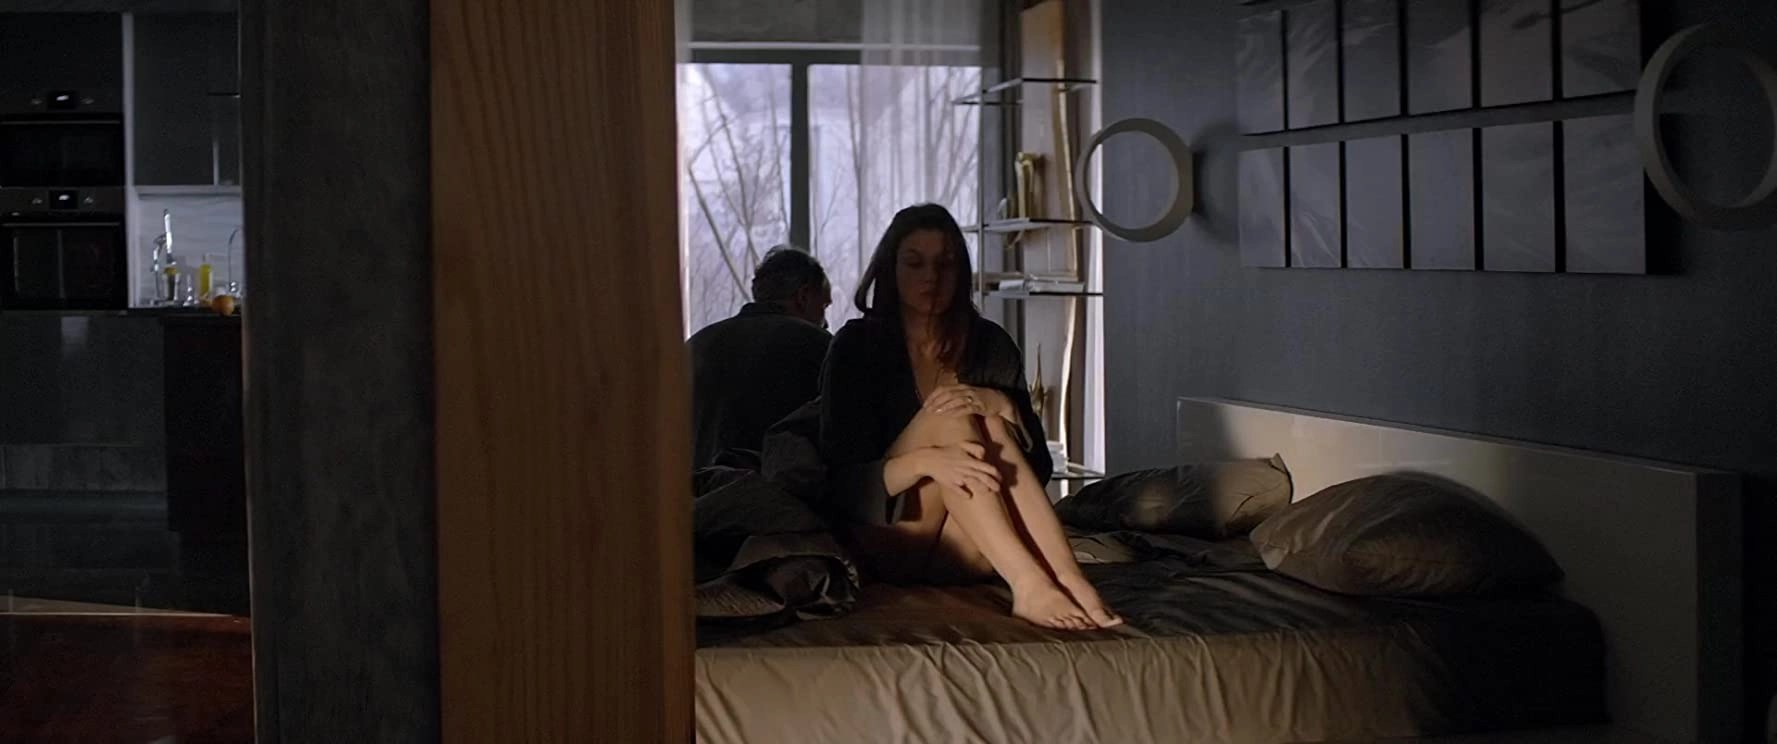 loveless-frame